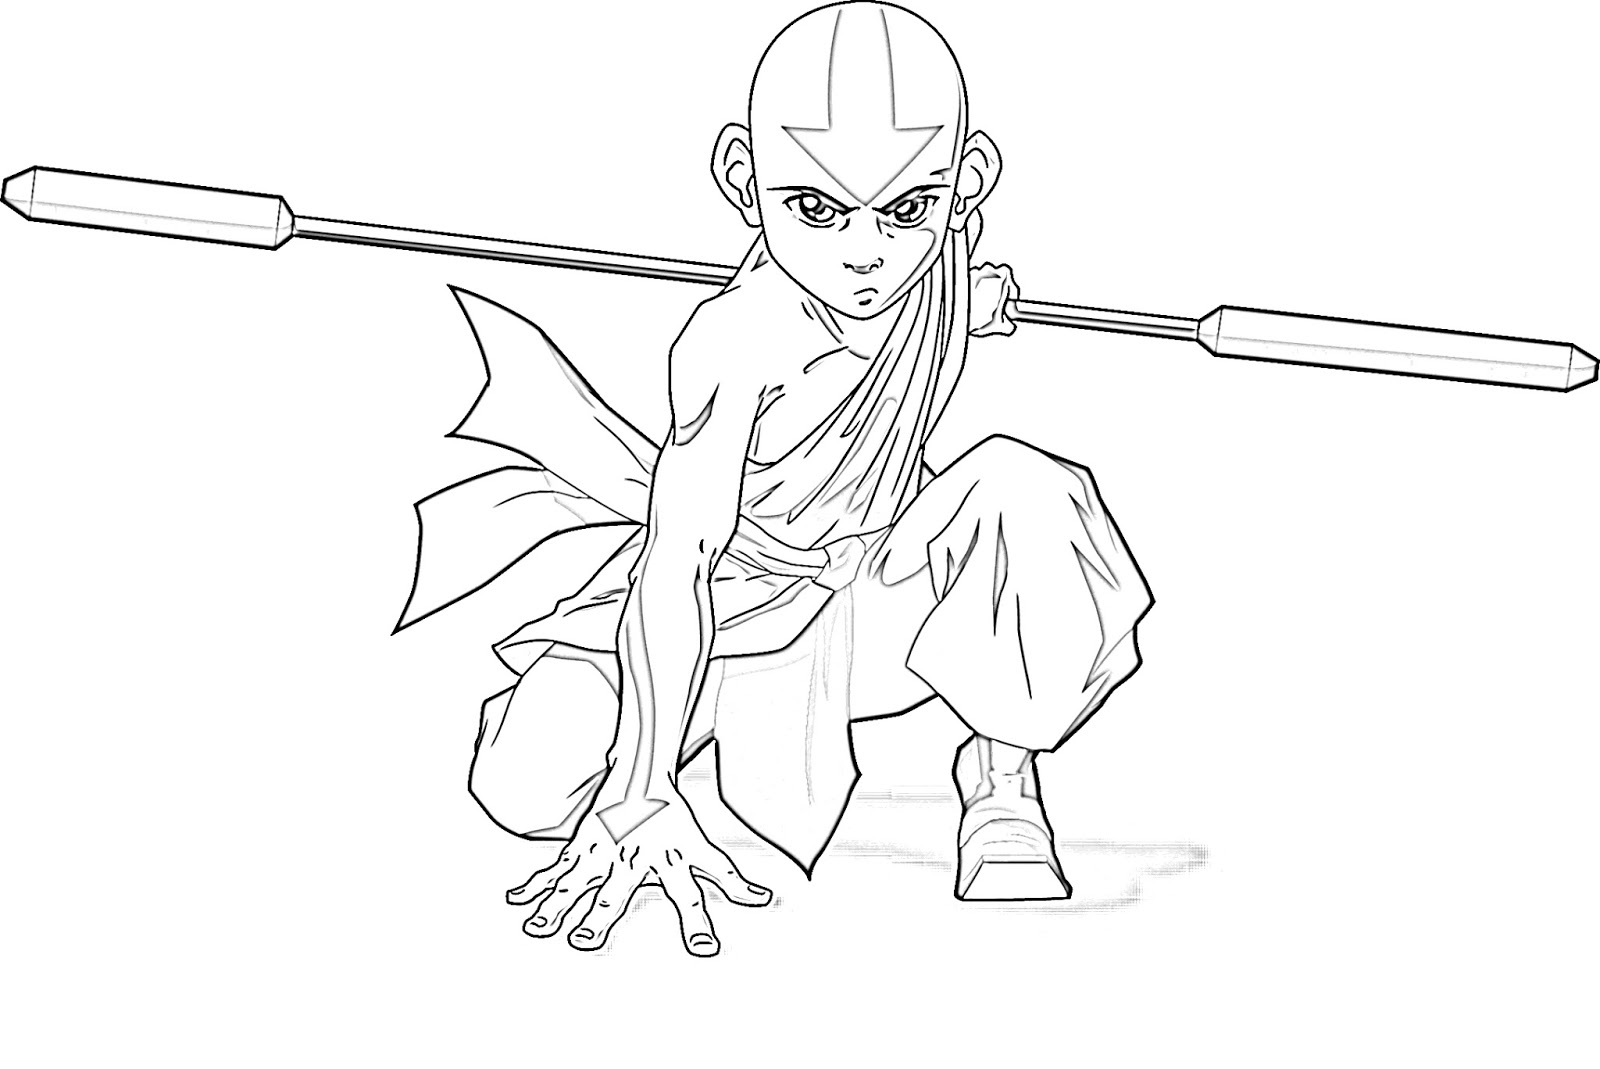 Craftoholic: Avatar The Last Airbender Coloring Pages